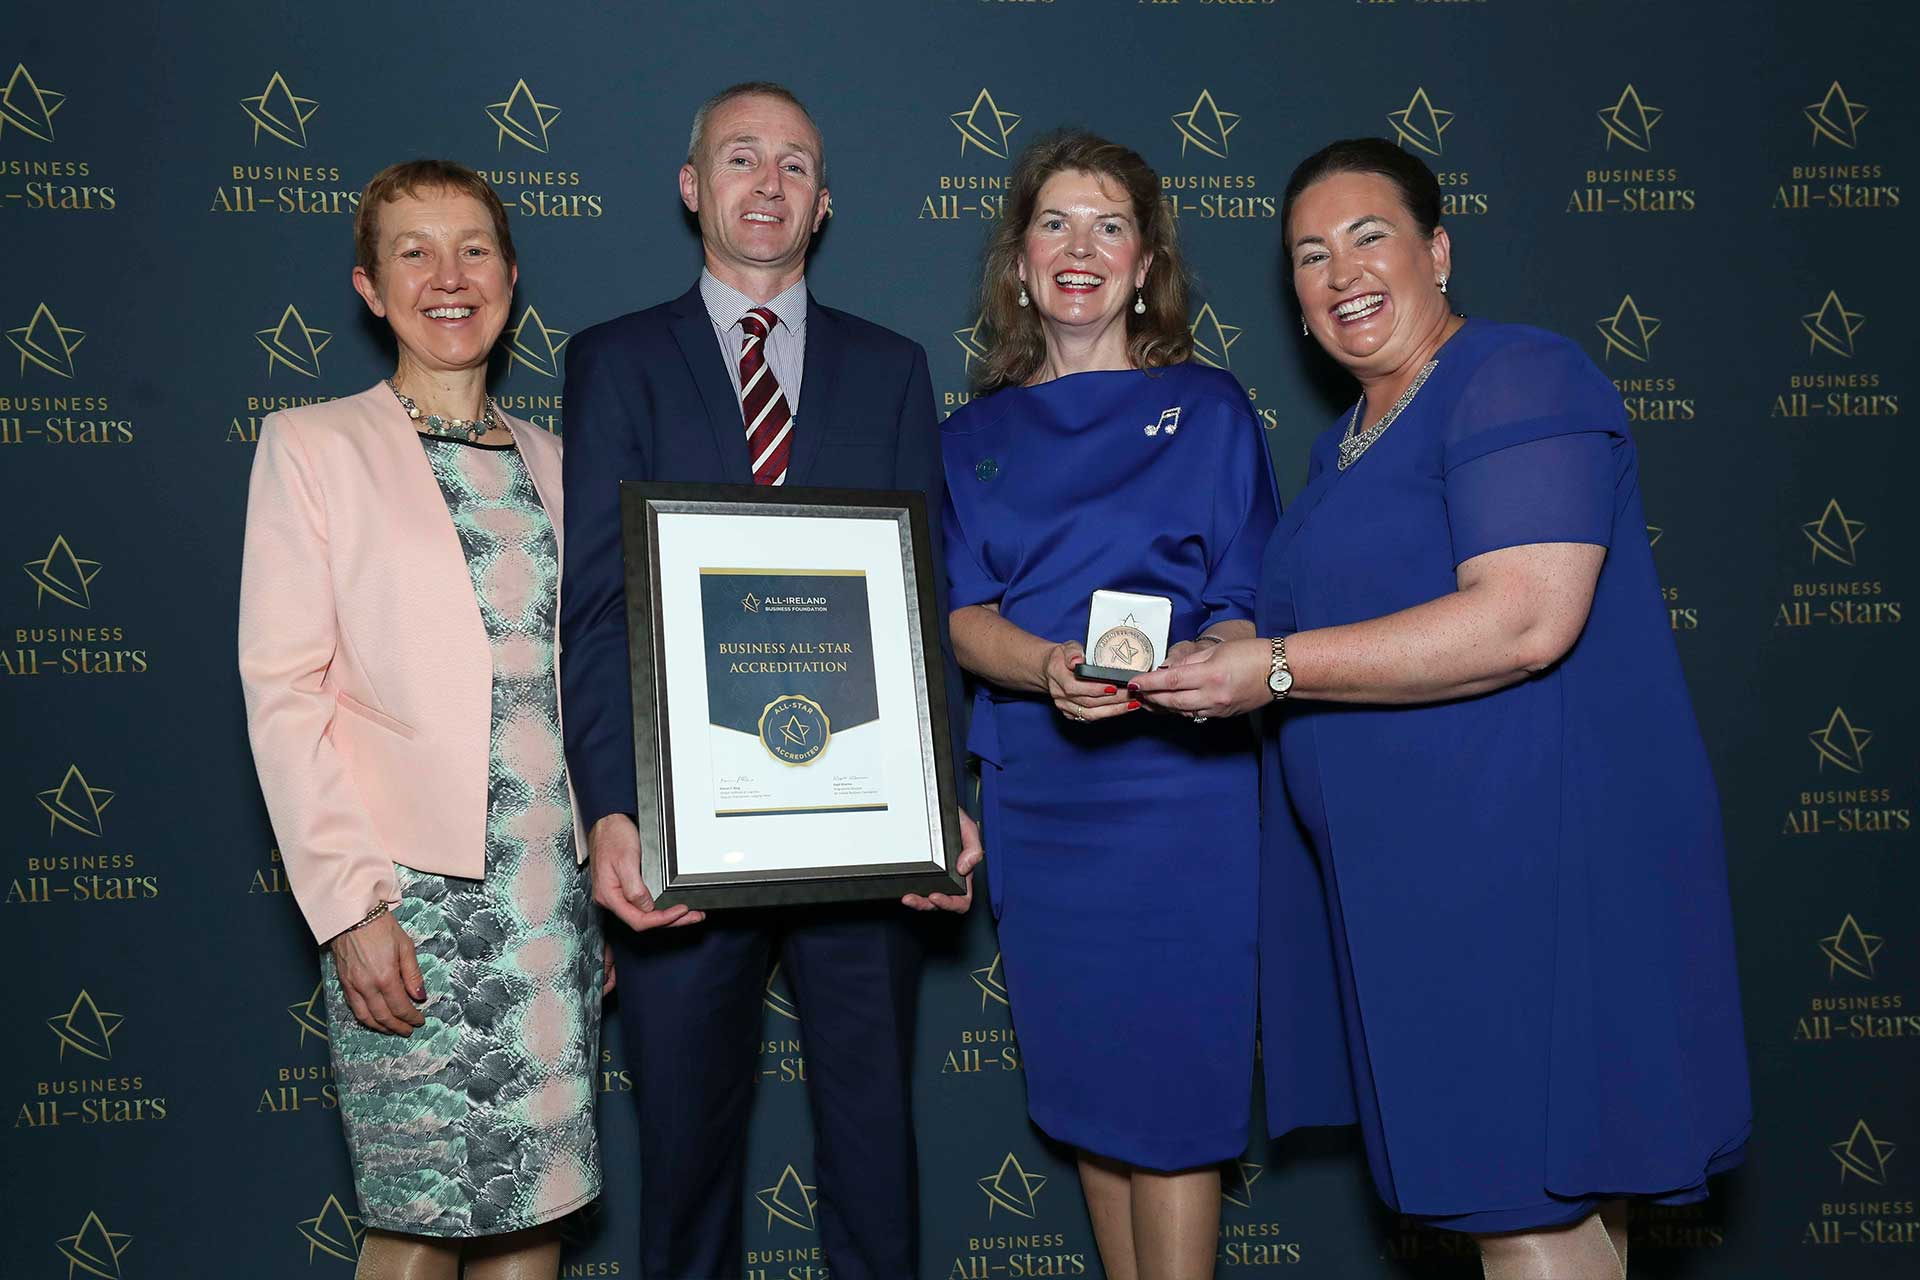 Micéal Stapleton and Mary Walsh - Ire Wel Pallets receiving Business All-Star Accreditation at Croke Park from Dr Briga Hynes, Kemmy Business School, University of Limerick and Elaine Carroll CEO, All-Ireland Business Foundation.